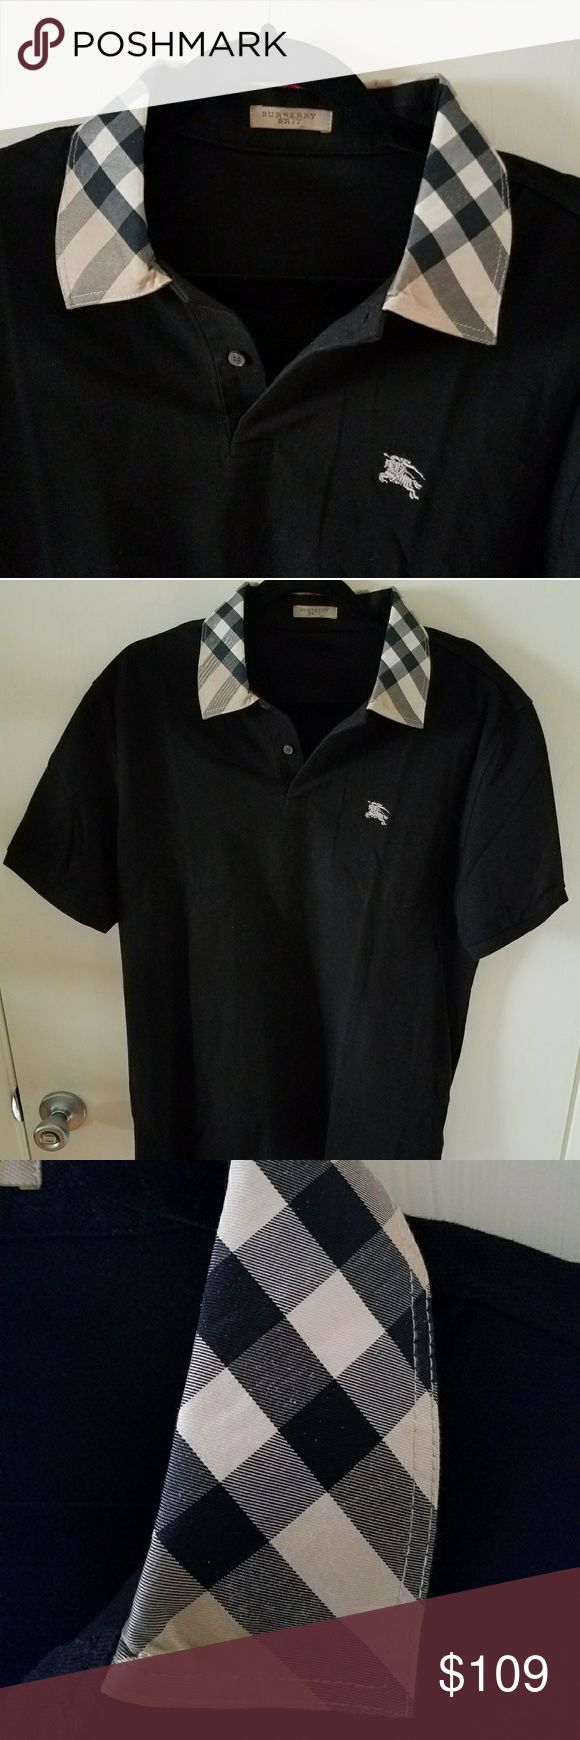 """BURBERRY Brit Polo Shirt 100% Authentic L XL NEW 100% Authentic Burberry Brit polo Shirt. Very Rare! This is a UK exclusive, not available in the USA!  Large US NEW  No size tag, but equal to USA Large or slim XL   BRAND NEW no Tag  23"""" Armpit to armpit. (Please compare LAST PIC)  Better Price through PPal Text me  Eric 925-984-1655  Low-ball offers will be ignored, sorry no trades  If you have an offer, make an offer, don't comment and ask if I'll take a certain amount.  Thanks Burberry…"""